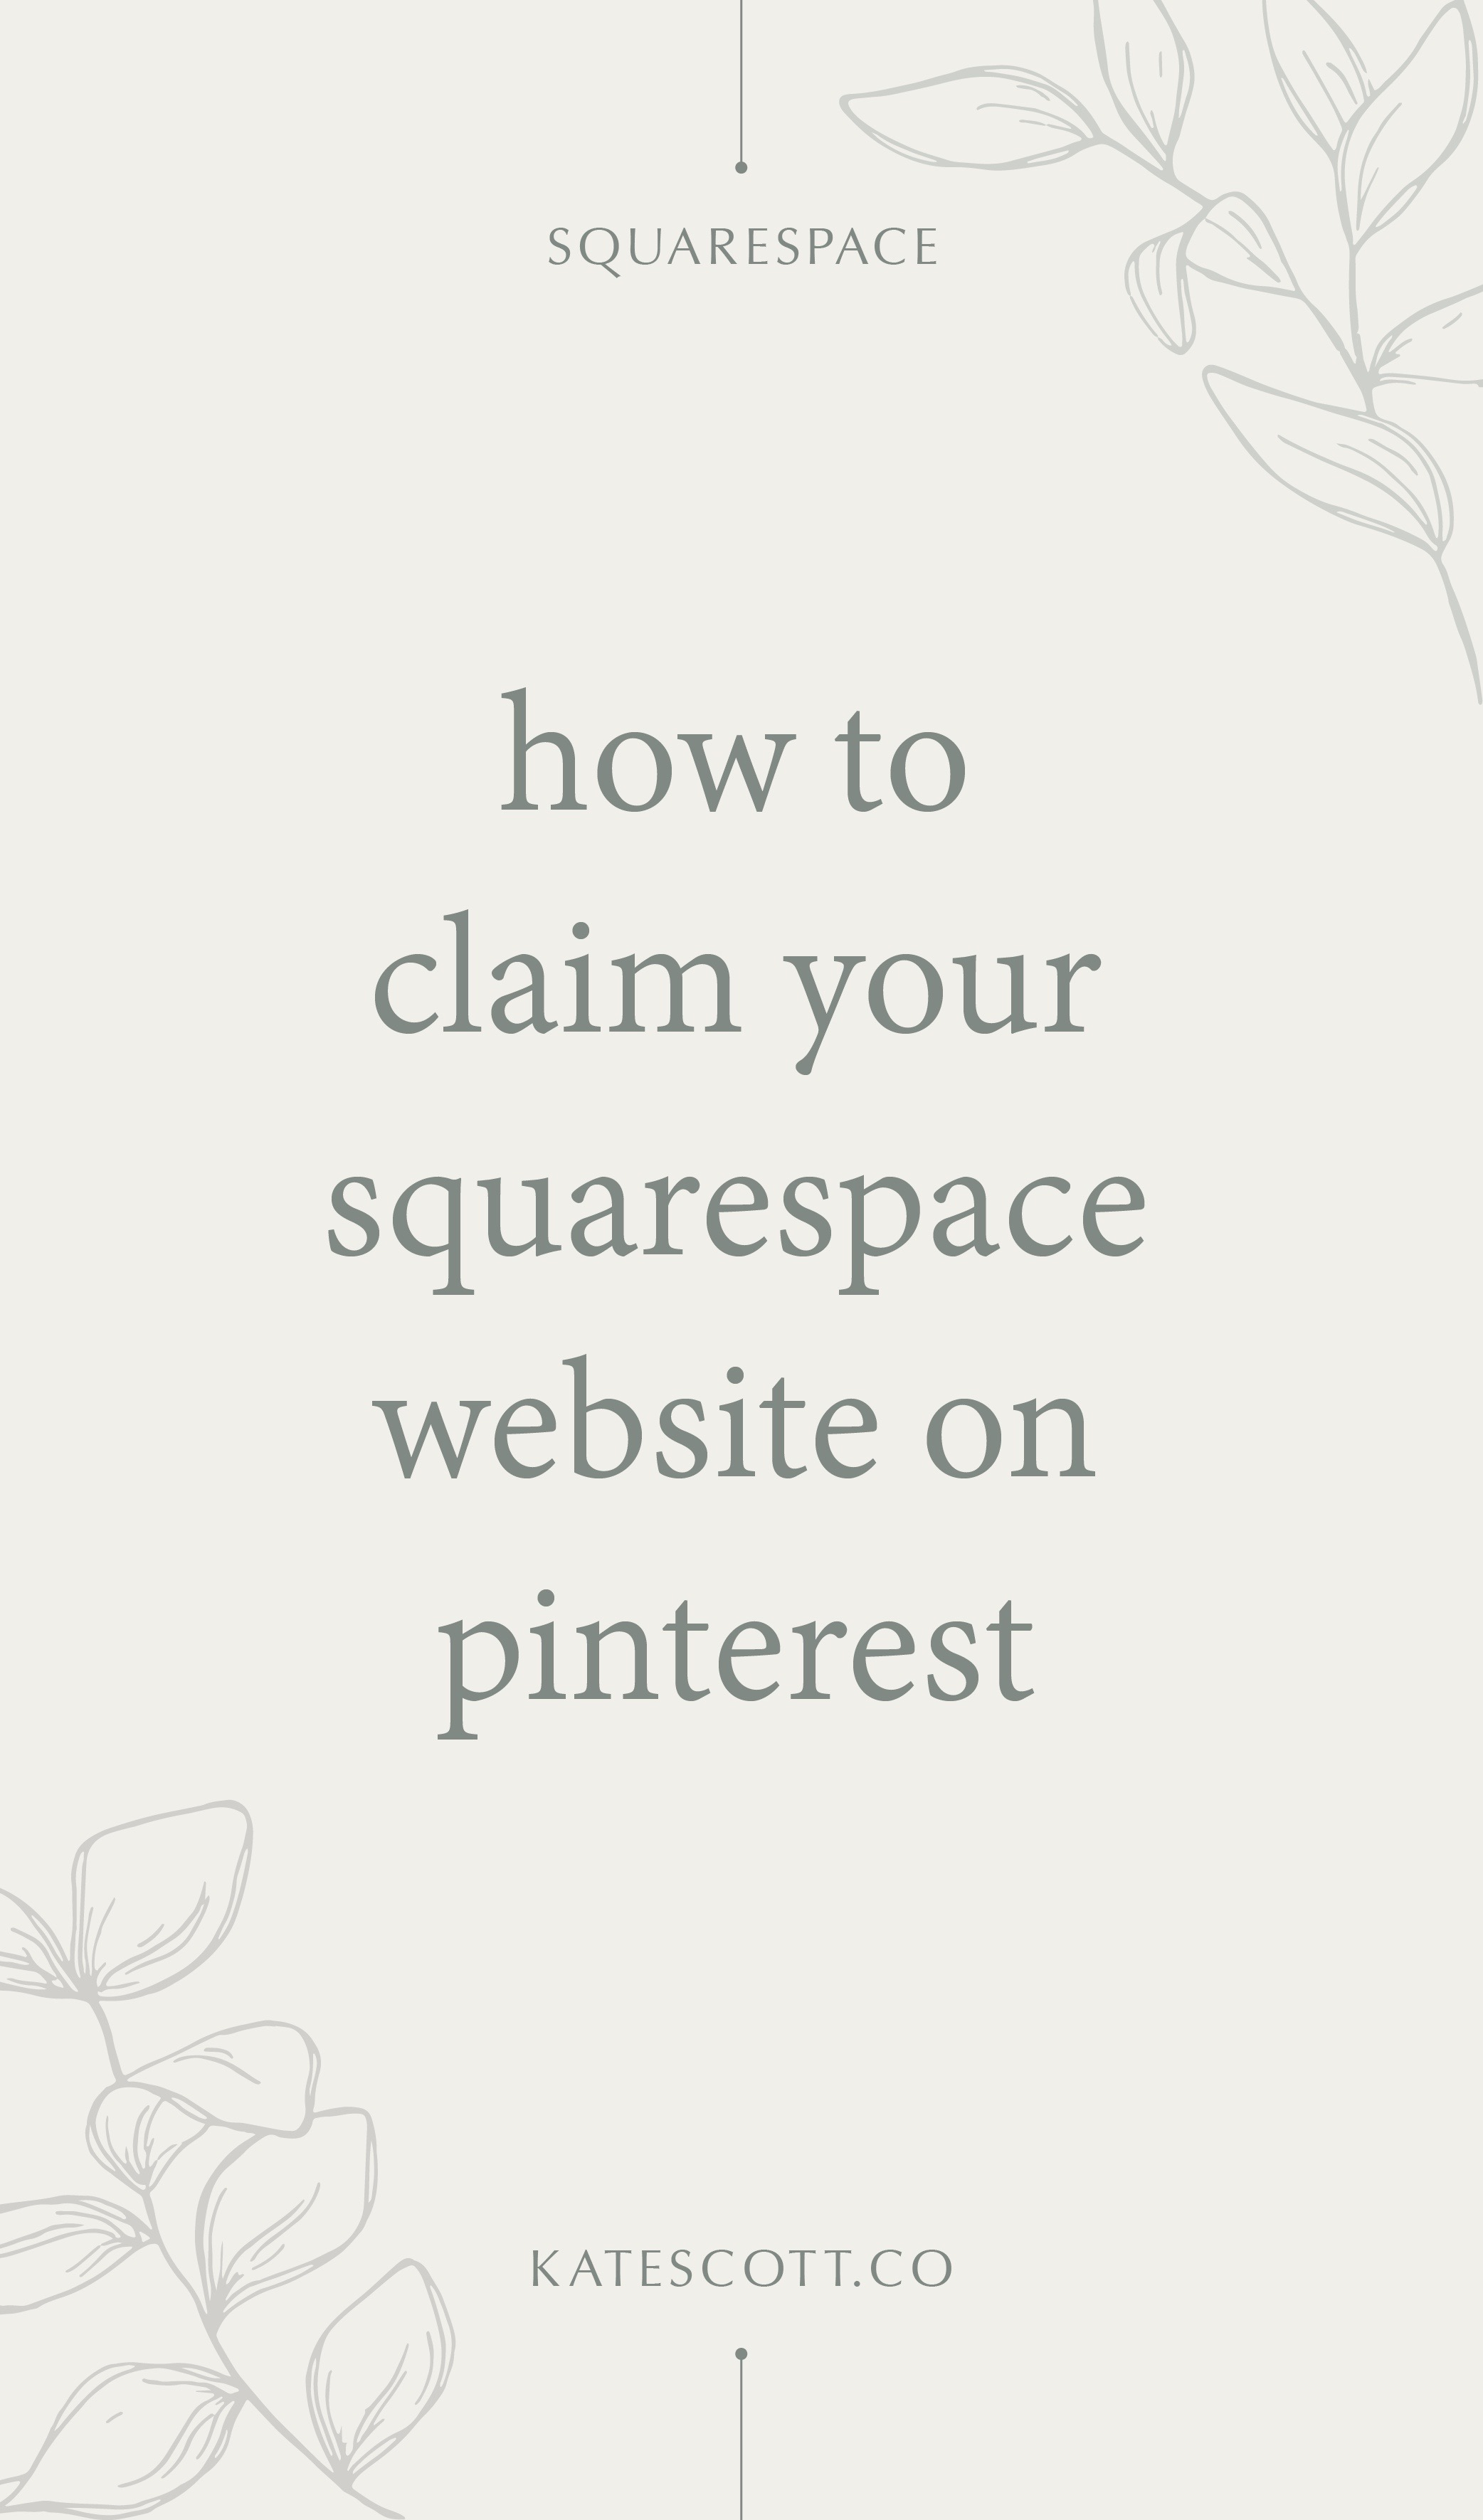 How to Claim Your Squarespace Website on Pinterest (Video Tutorial + Step-by-Step Instructions) | Squarespace Tutorial | Pinterest Tutorial | How to Claim Website on Pinterest | #squarespace #pinterest #squarespacetutorial #pinteresttutorial